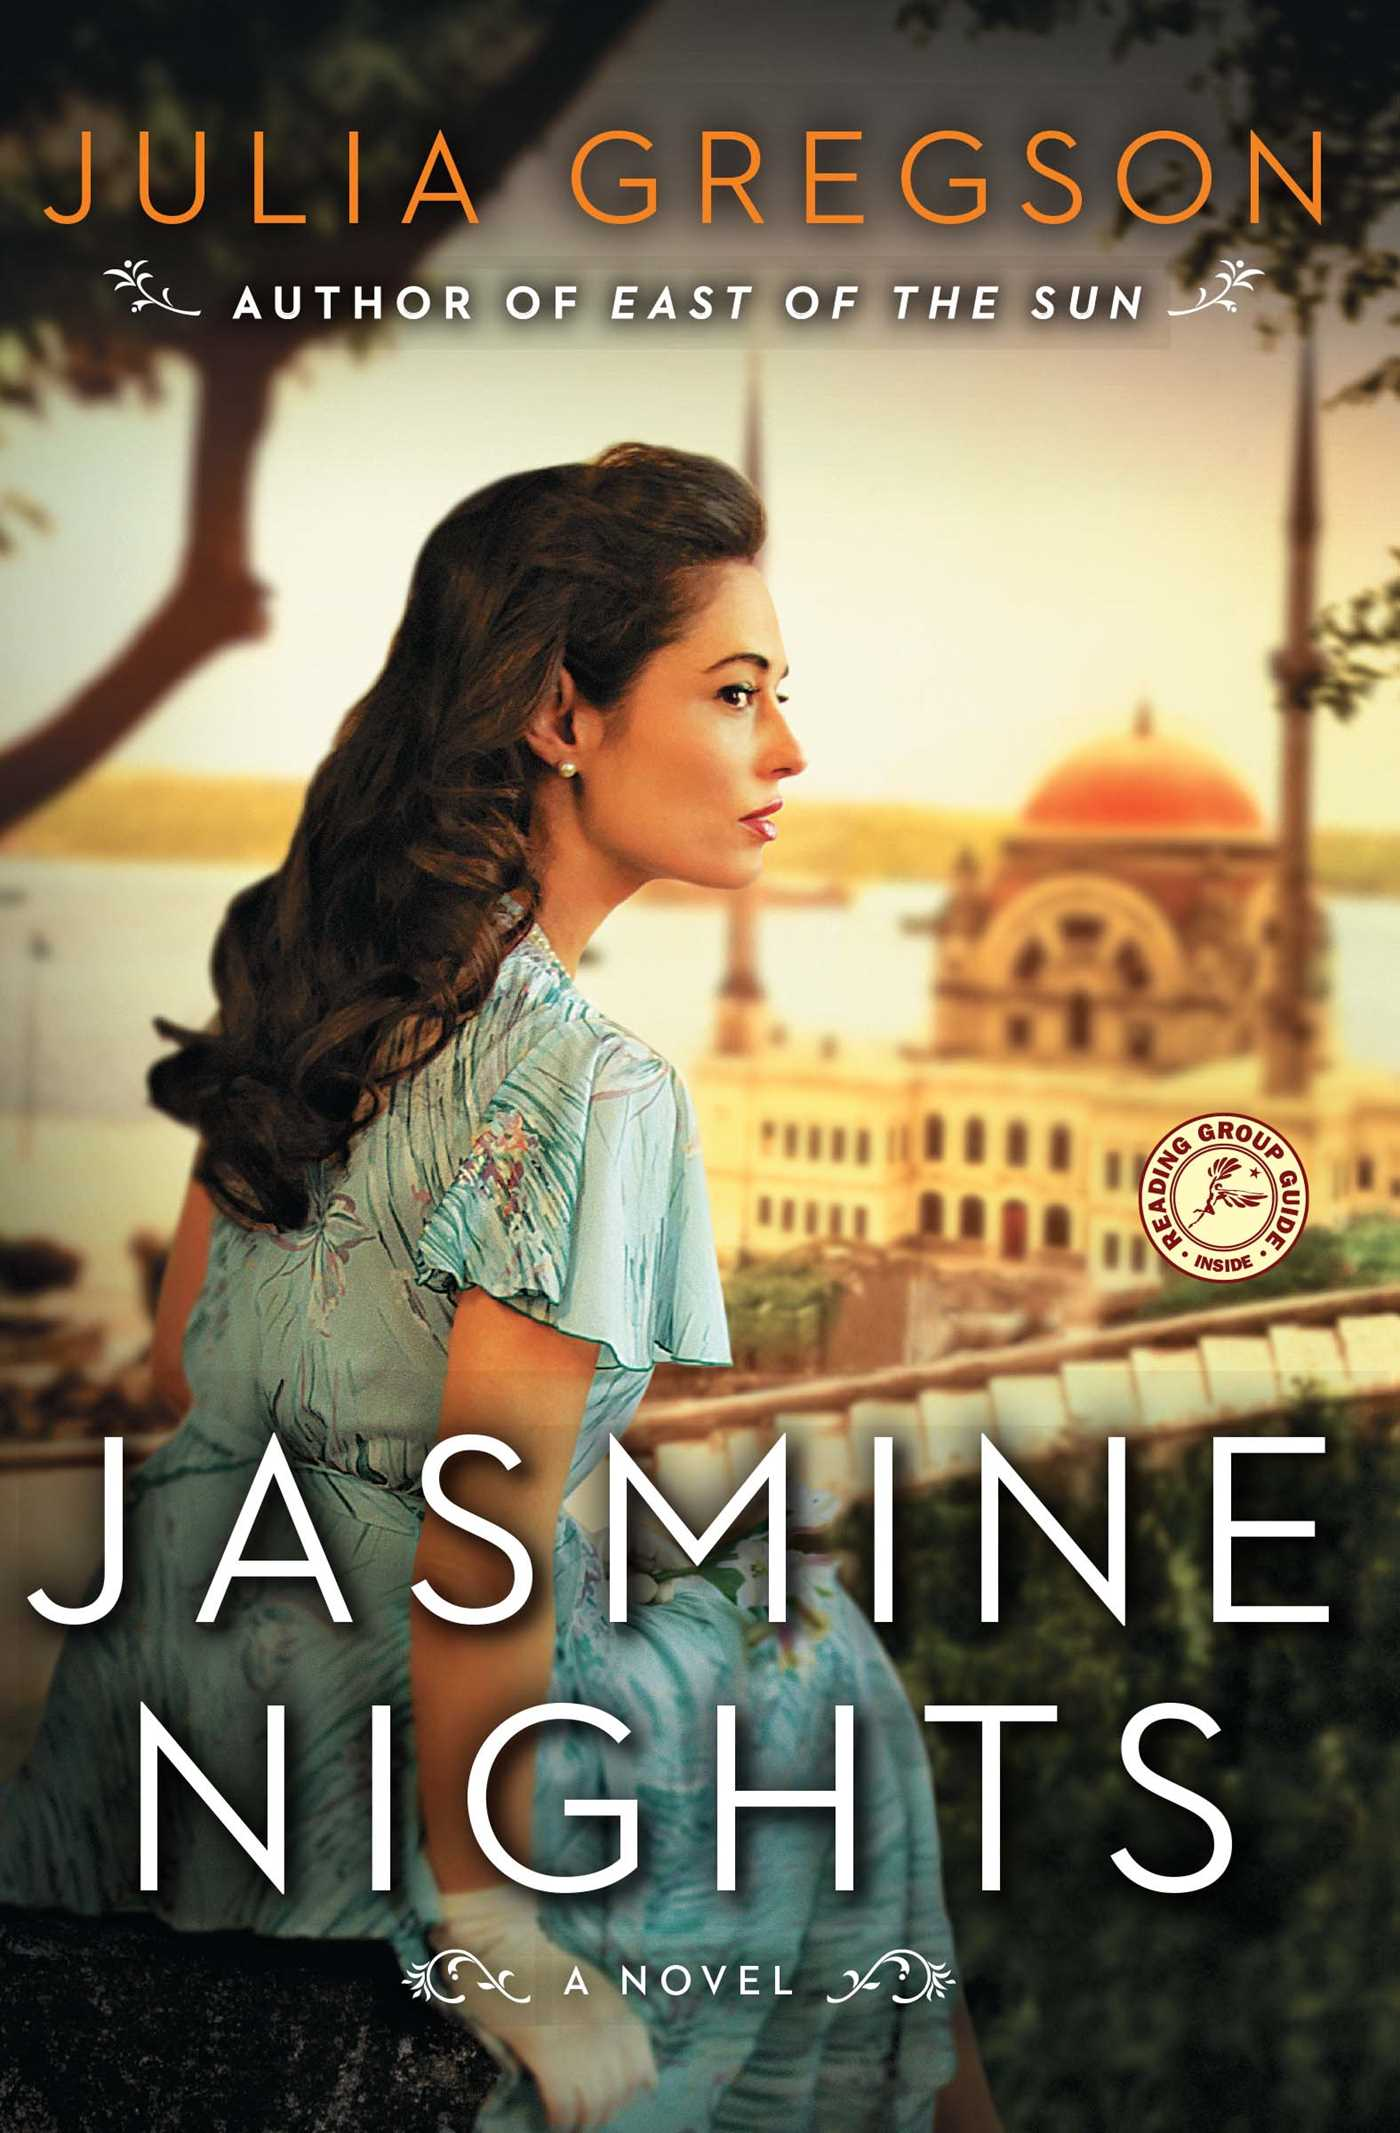 Jasmine nights 9781439155585 hr